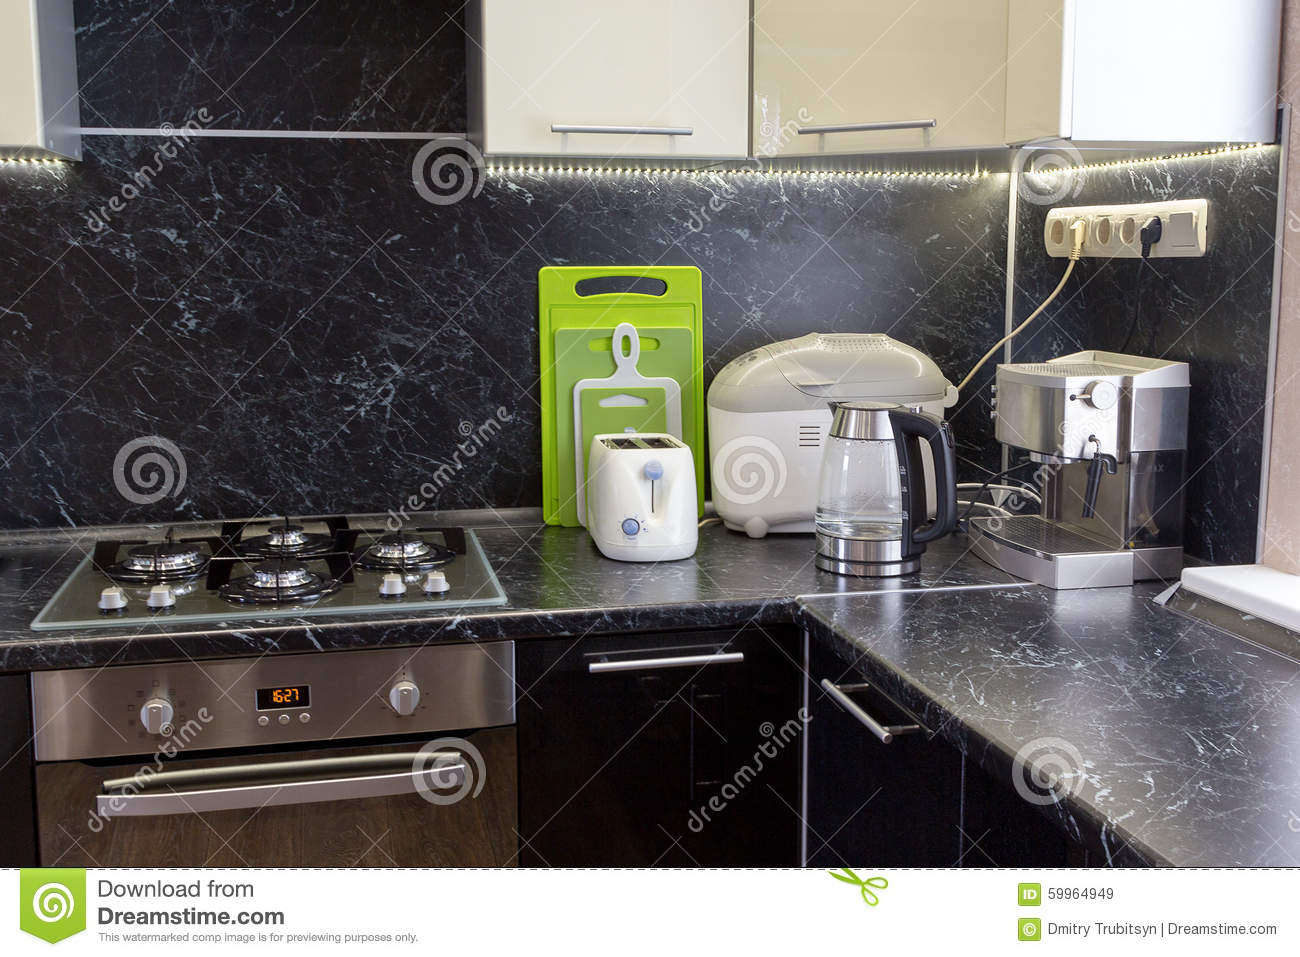 Cucina Kitchen Appliances Kitchen Appliances On Black Worktop With Led Backlight Stock Image